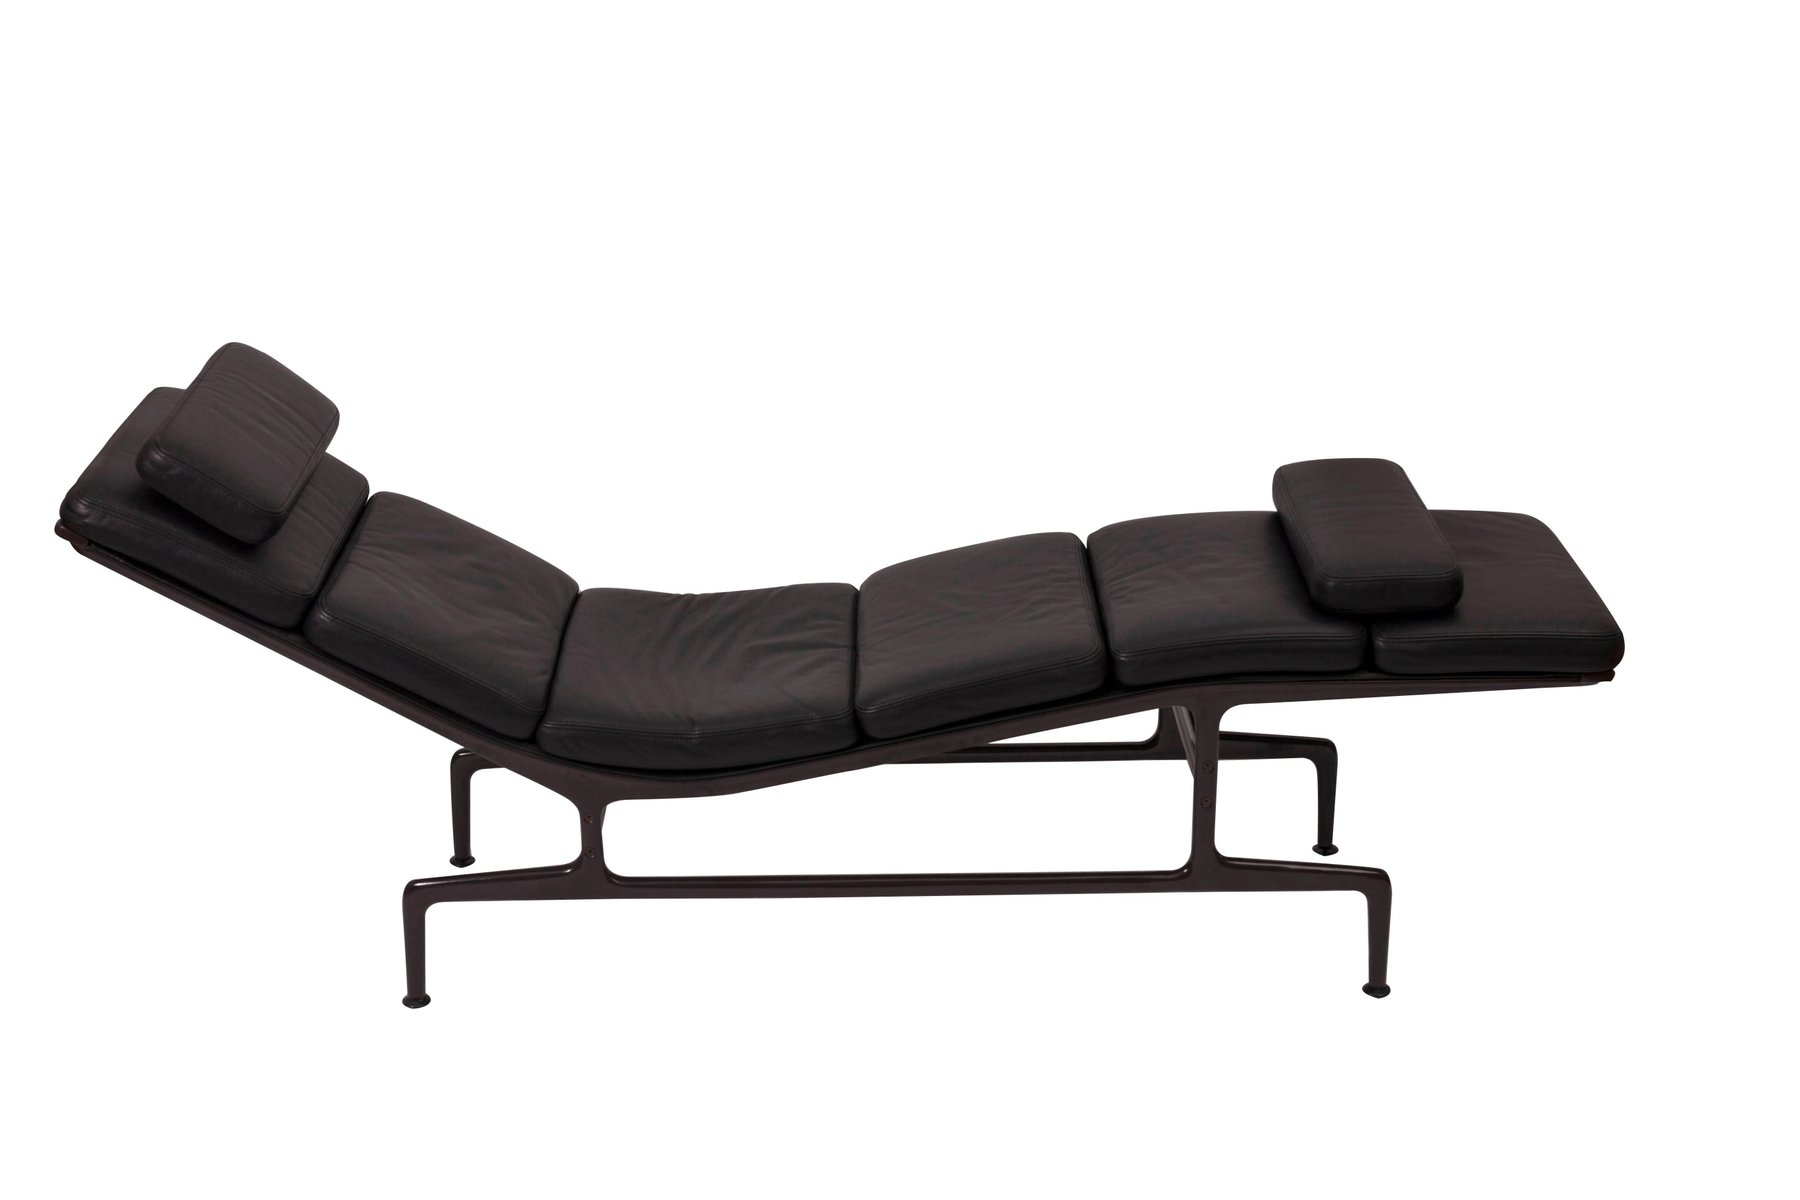 vintage billy wilder chaise lounge by charles ray eames - Chaise Vintage